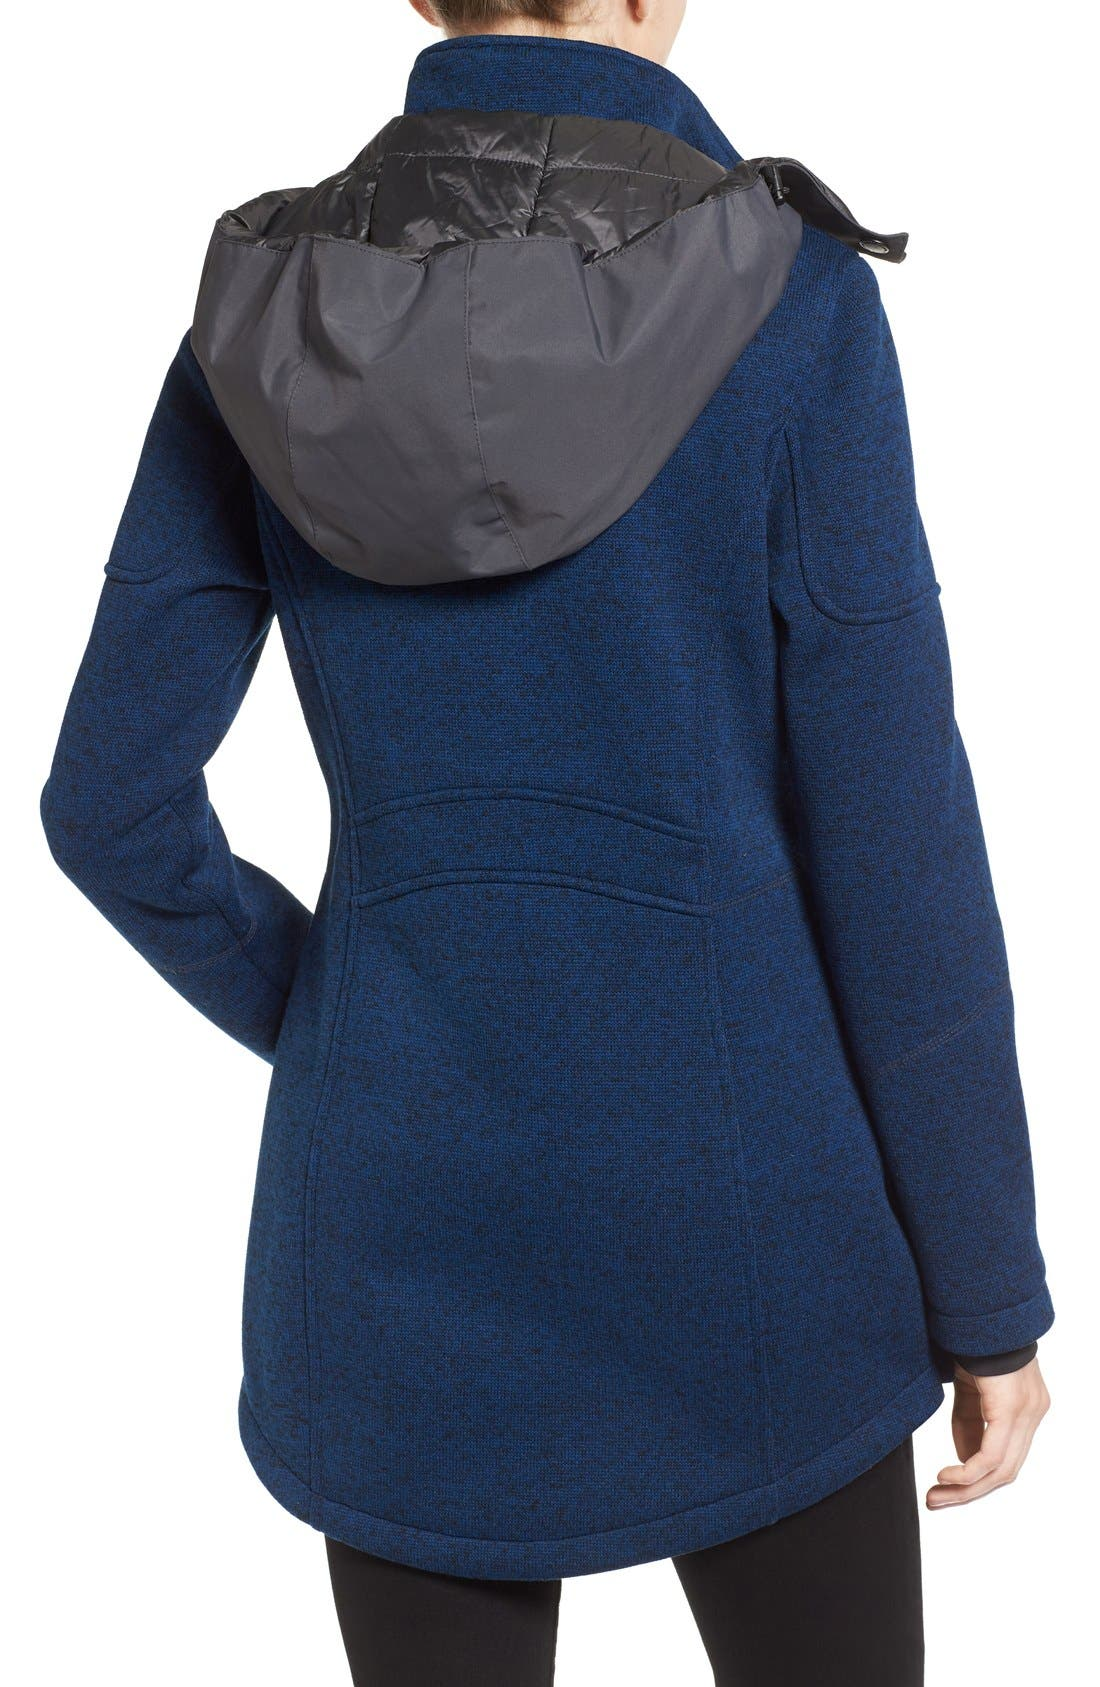 Bonded Knit Zip Front Jacket,                             Alternate thumbnail 2, color,                             Navy